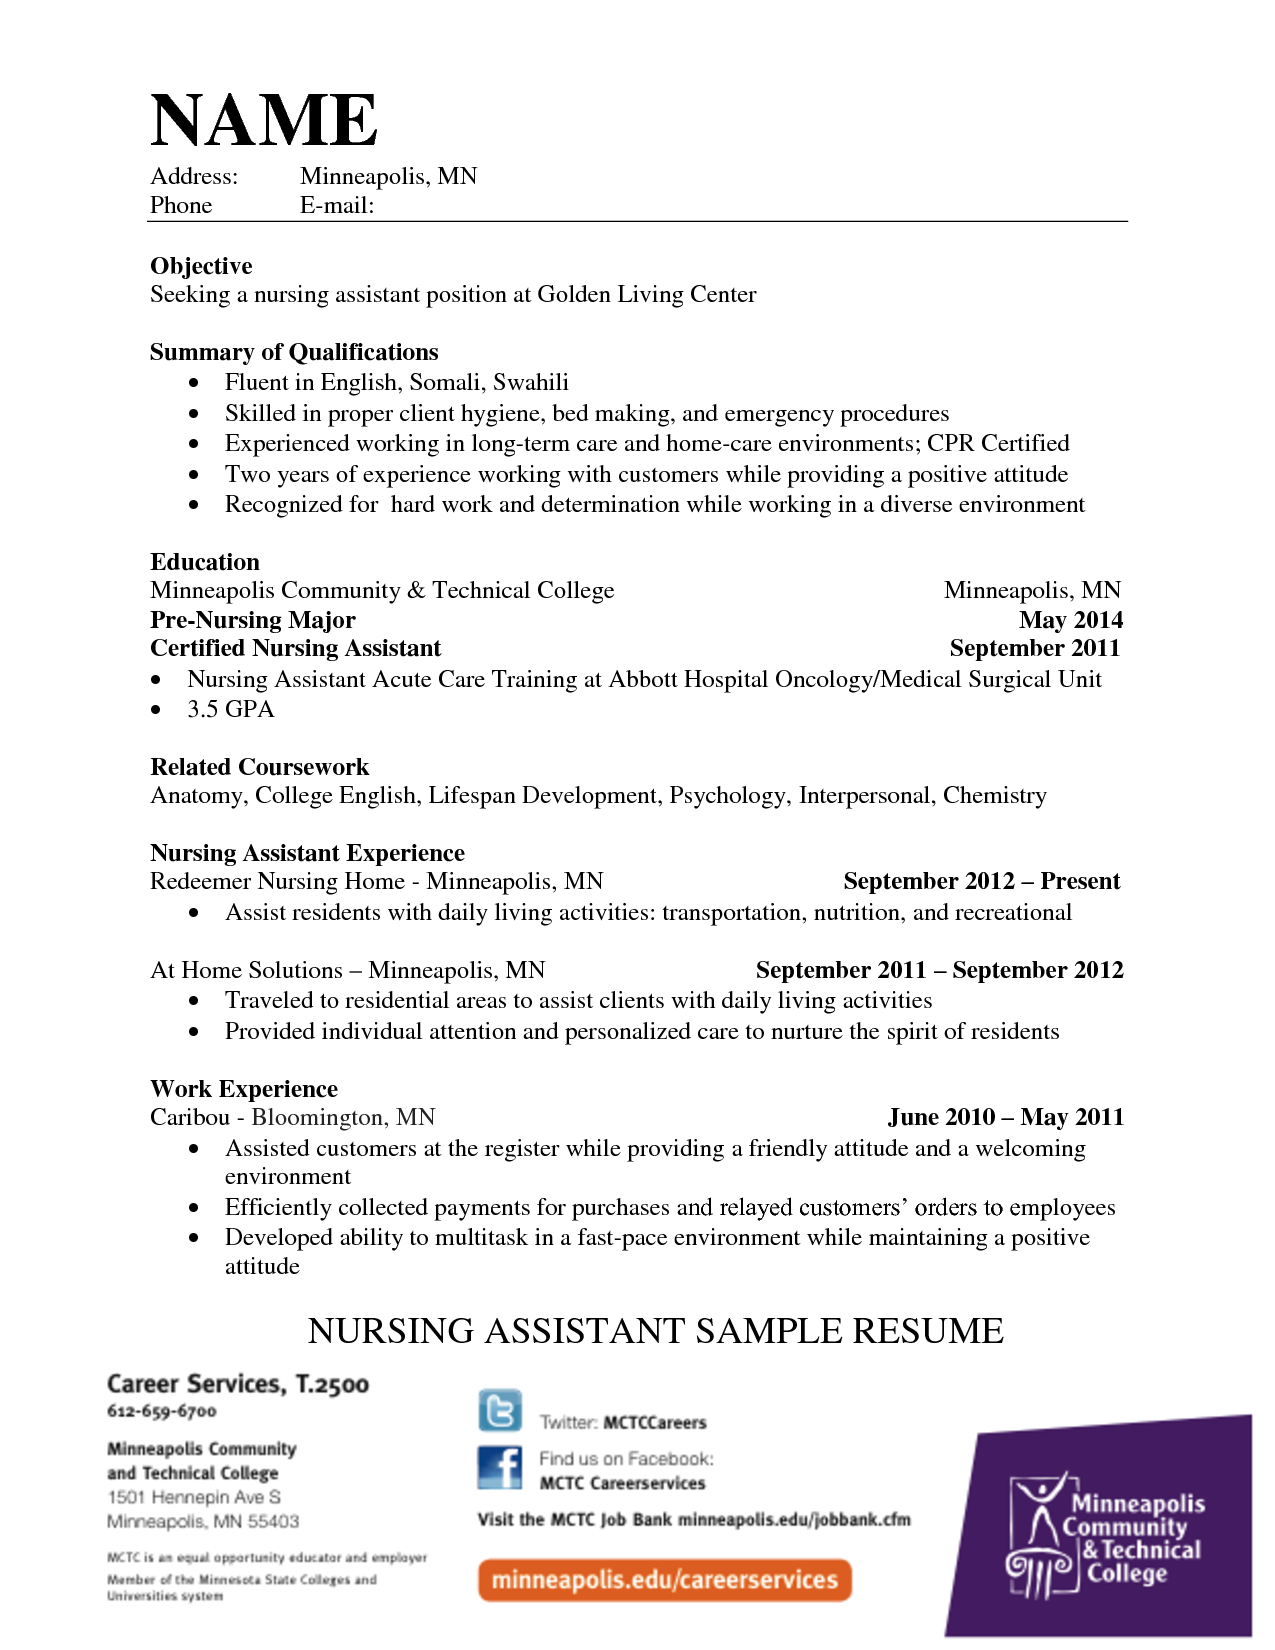 Example Application Letter For Nursing Assistant Cna Job Resume Cover  Happytom Waitress Skills Waitressing  Nurse Aide Resume Examples